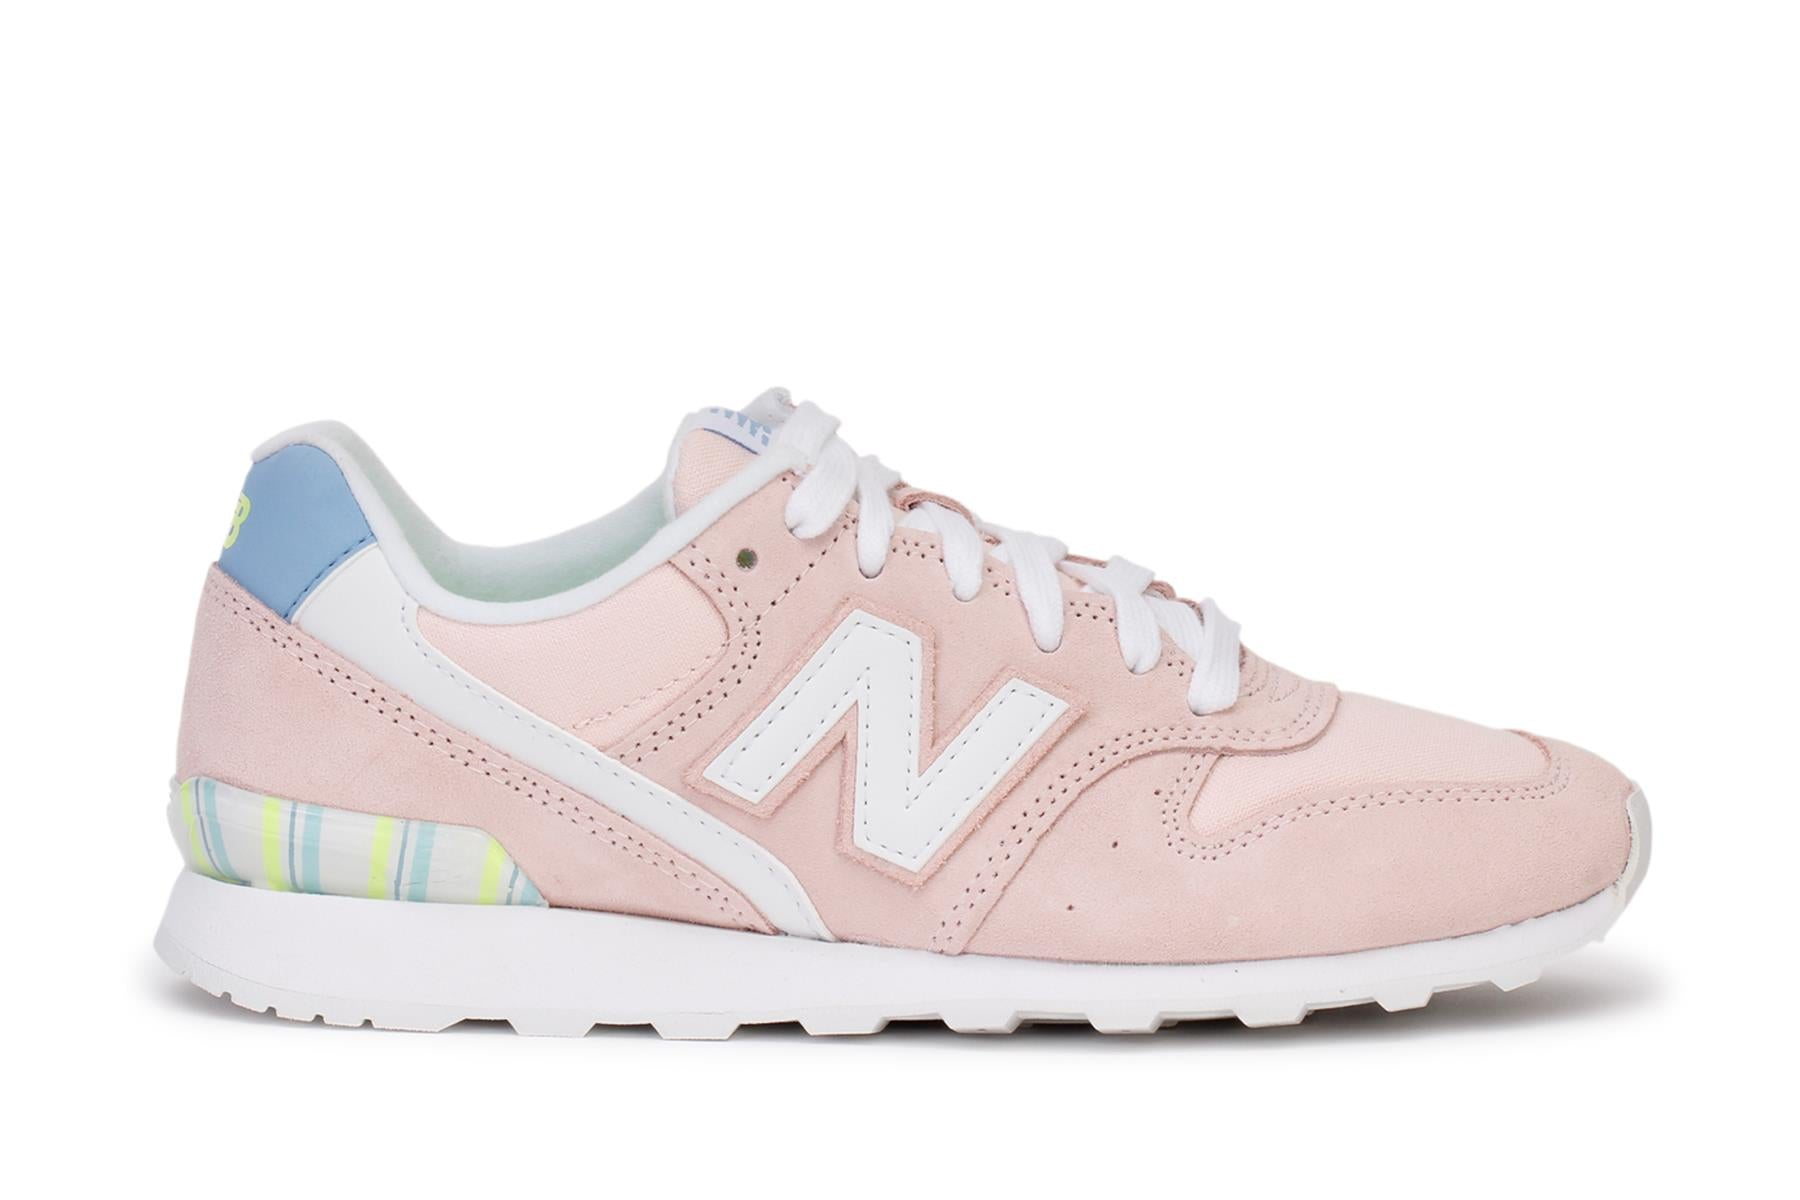 696 New Balance Sneakers